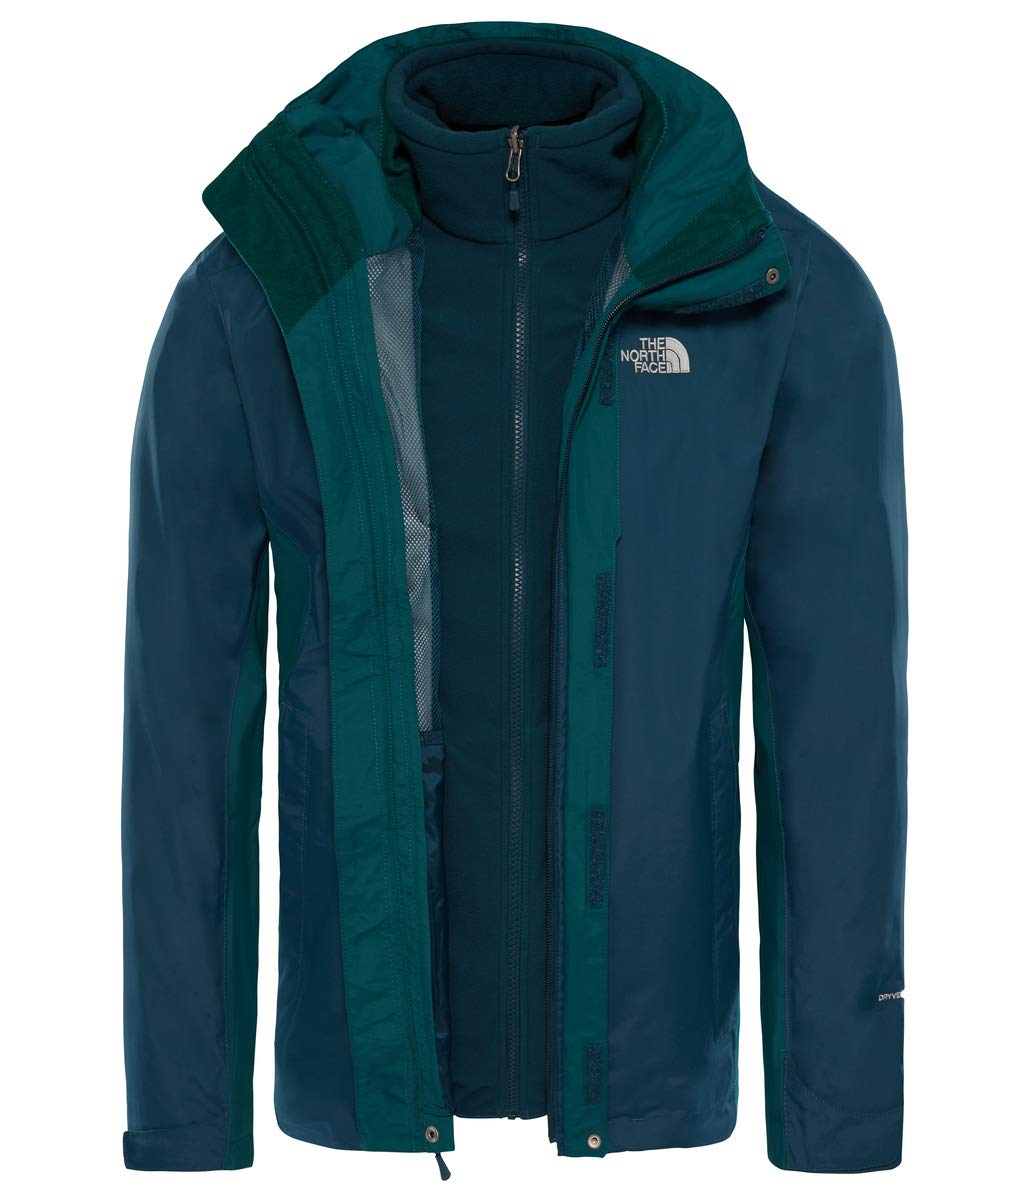 The North Face M Tricl Chaqueta Evolution II Triclimate, Hombre